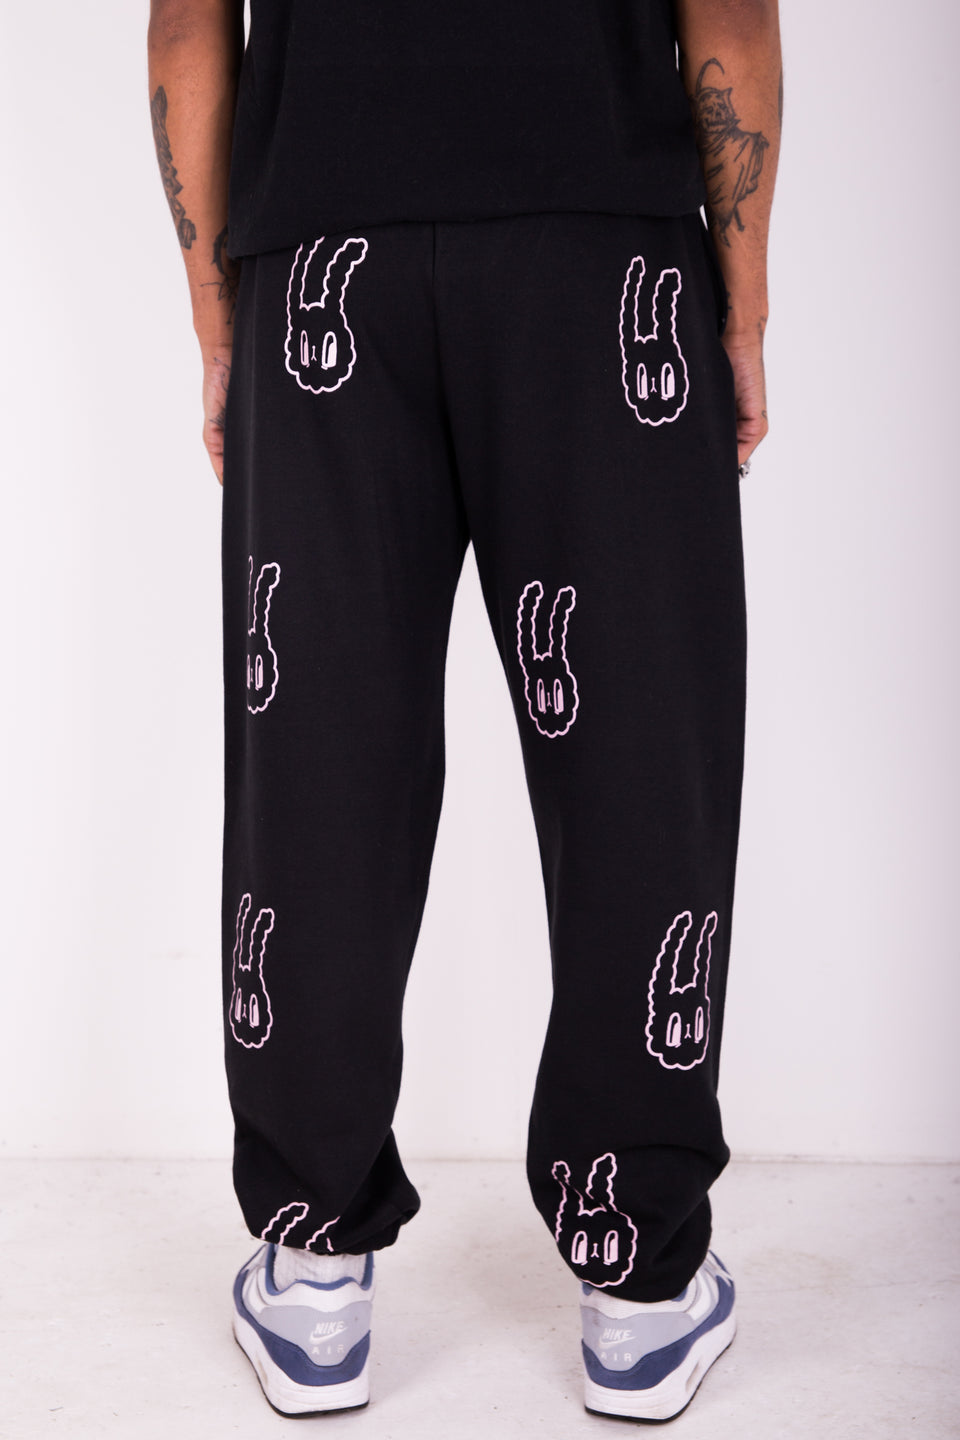 BUNNY BOY TRACKIE BOTTOMS - BLACK & PINK